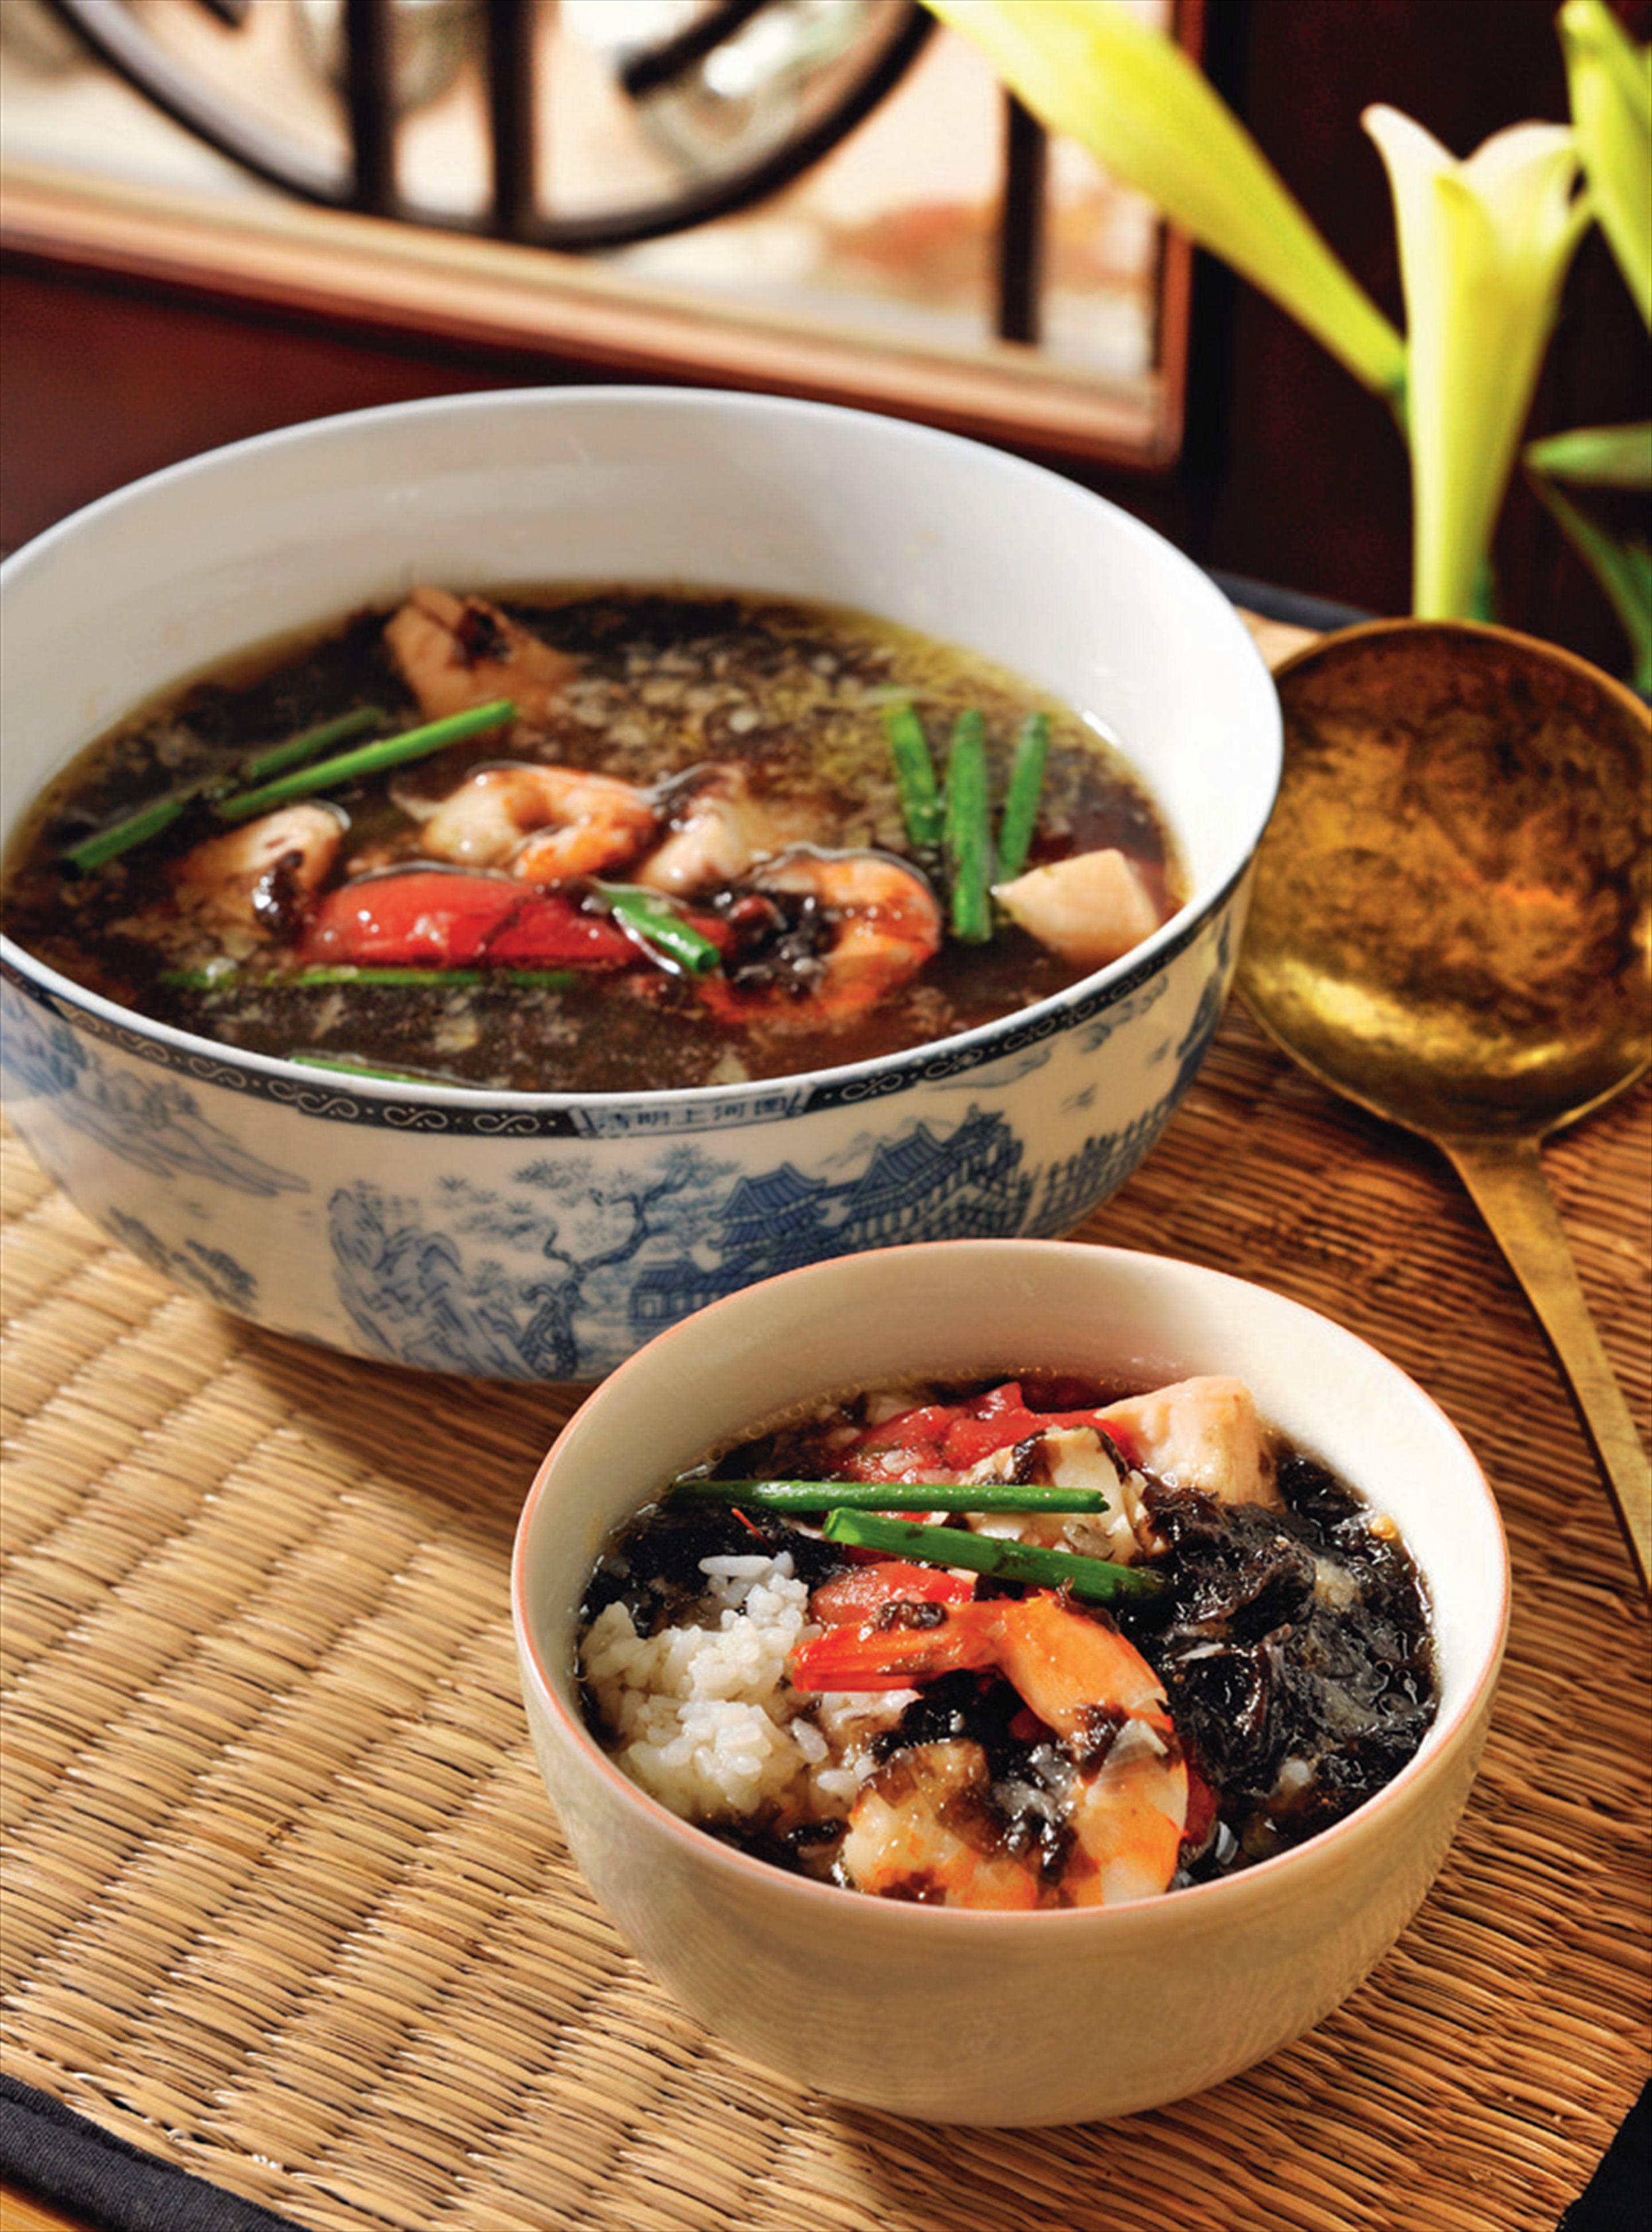 Seaweed and fish soup